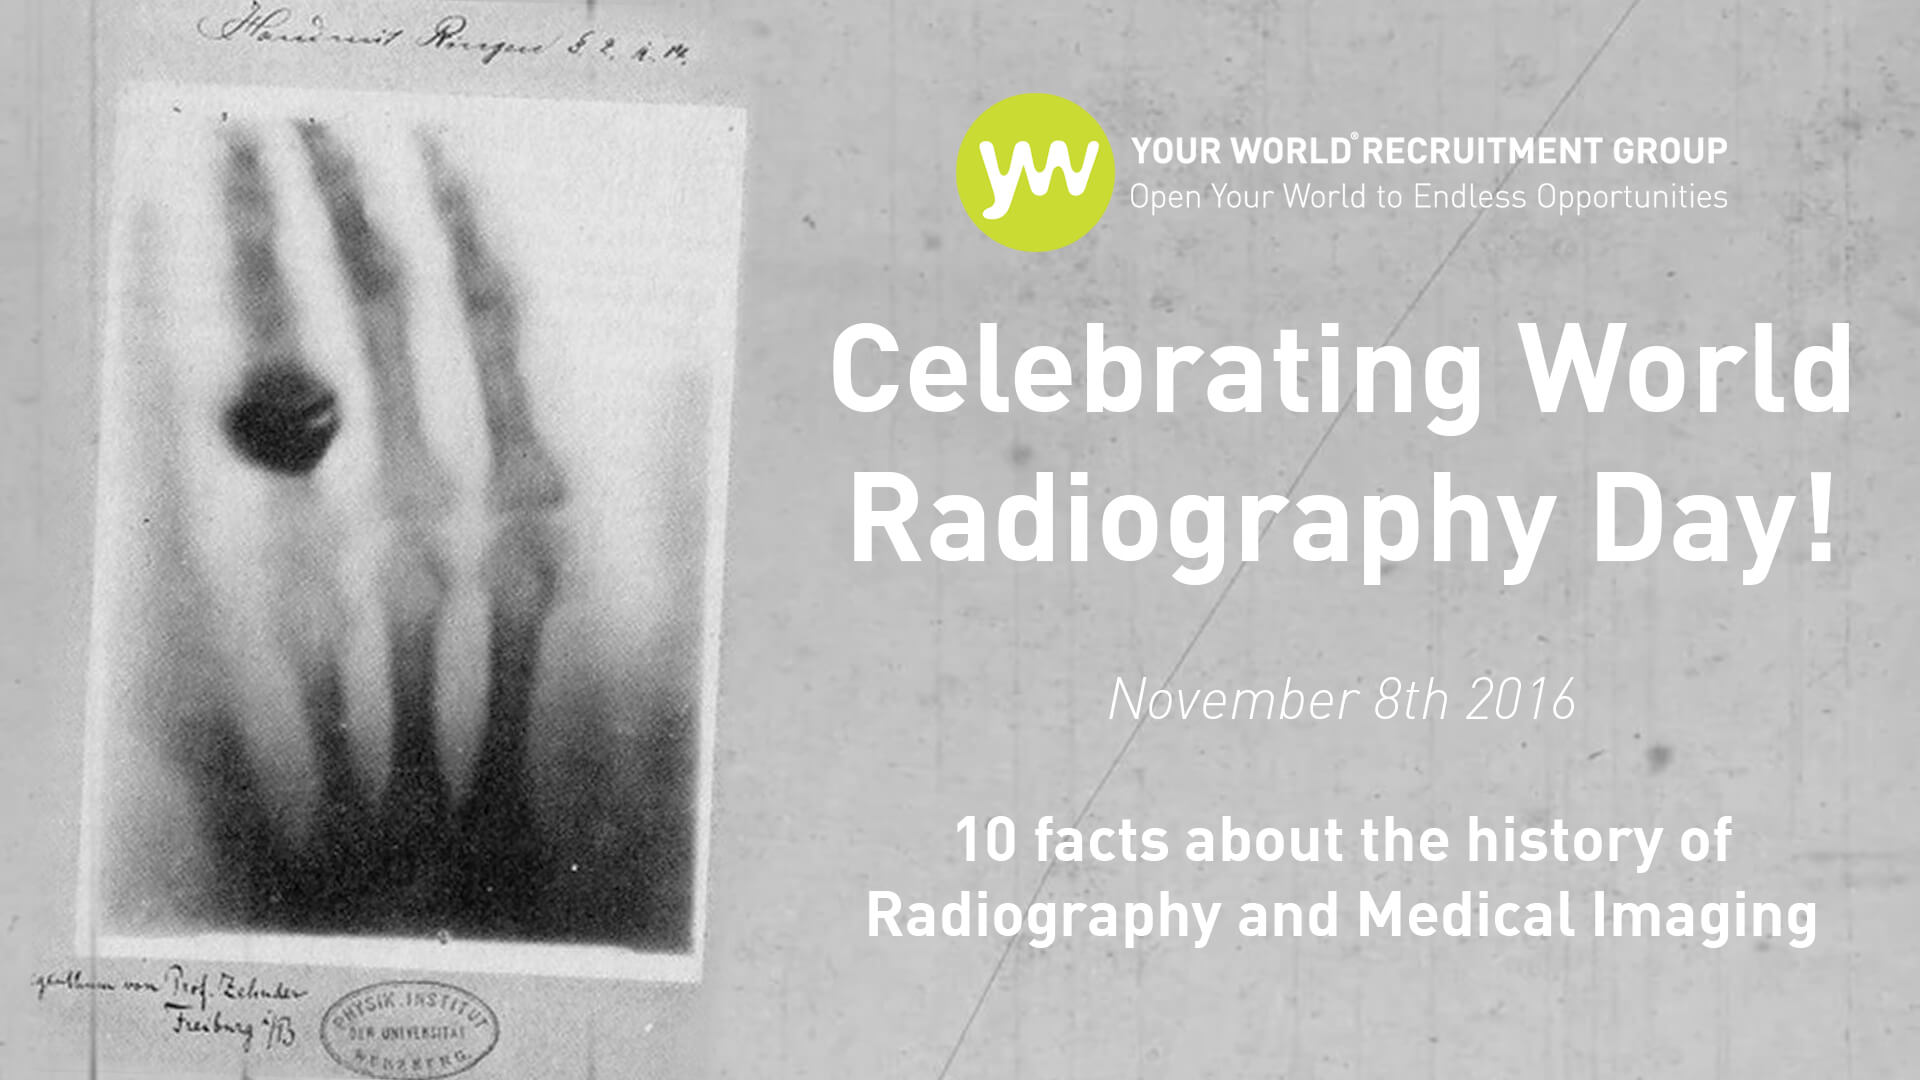 It's World Radiography Day 2016!